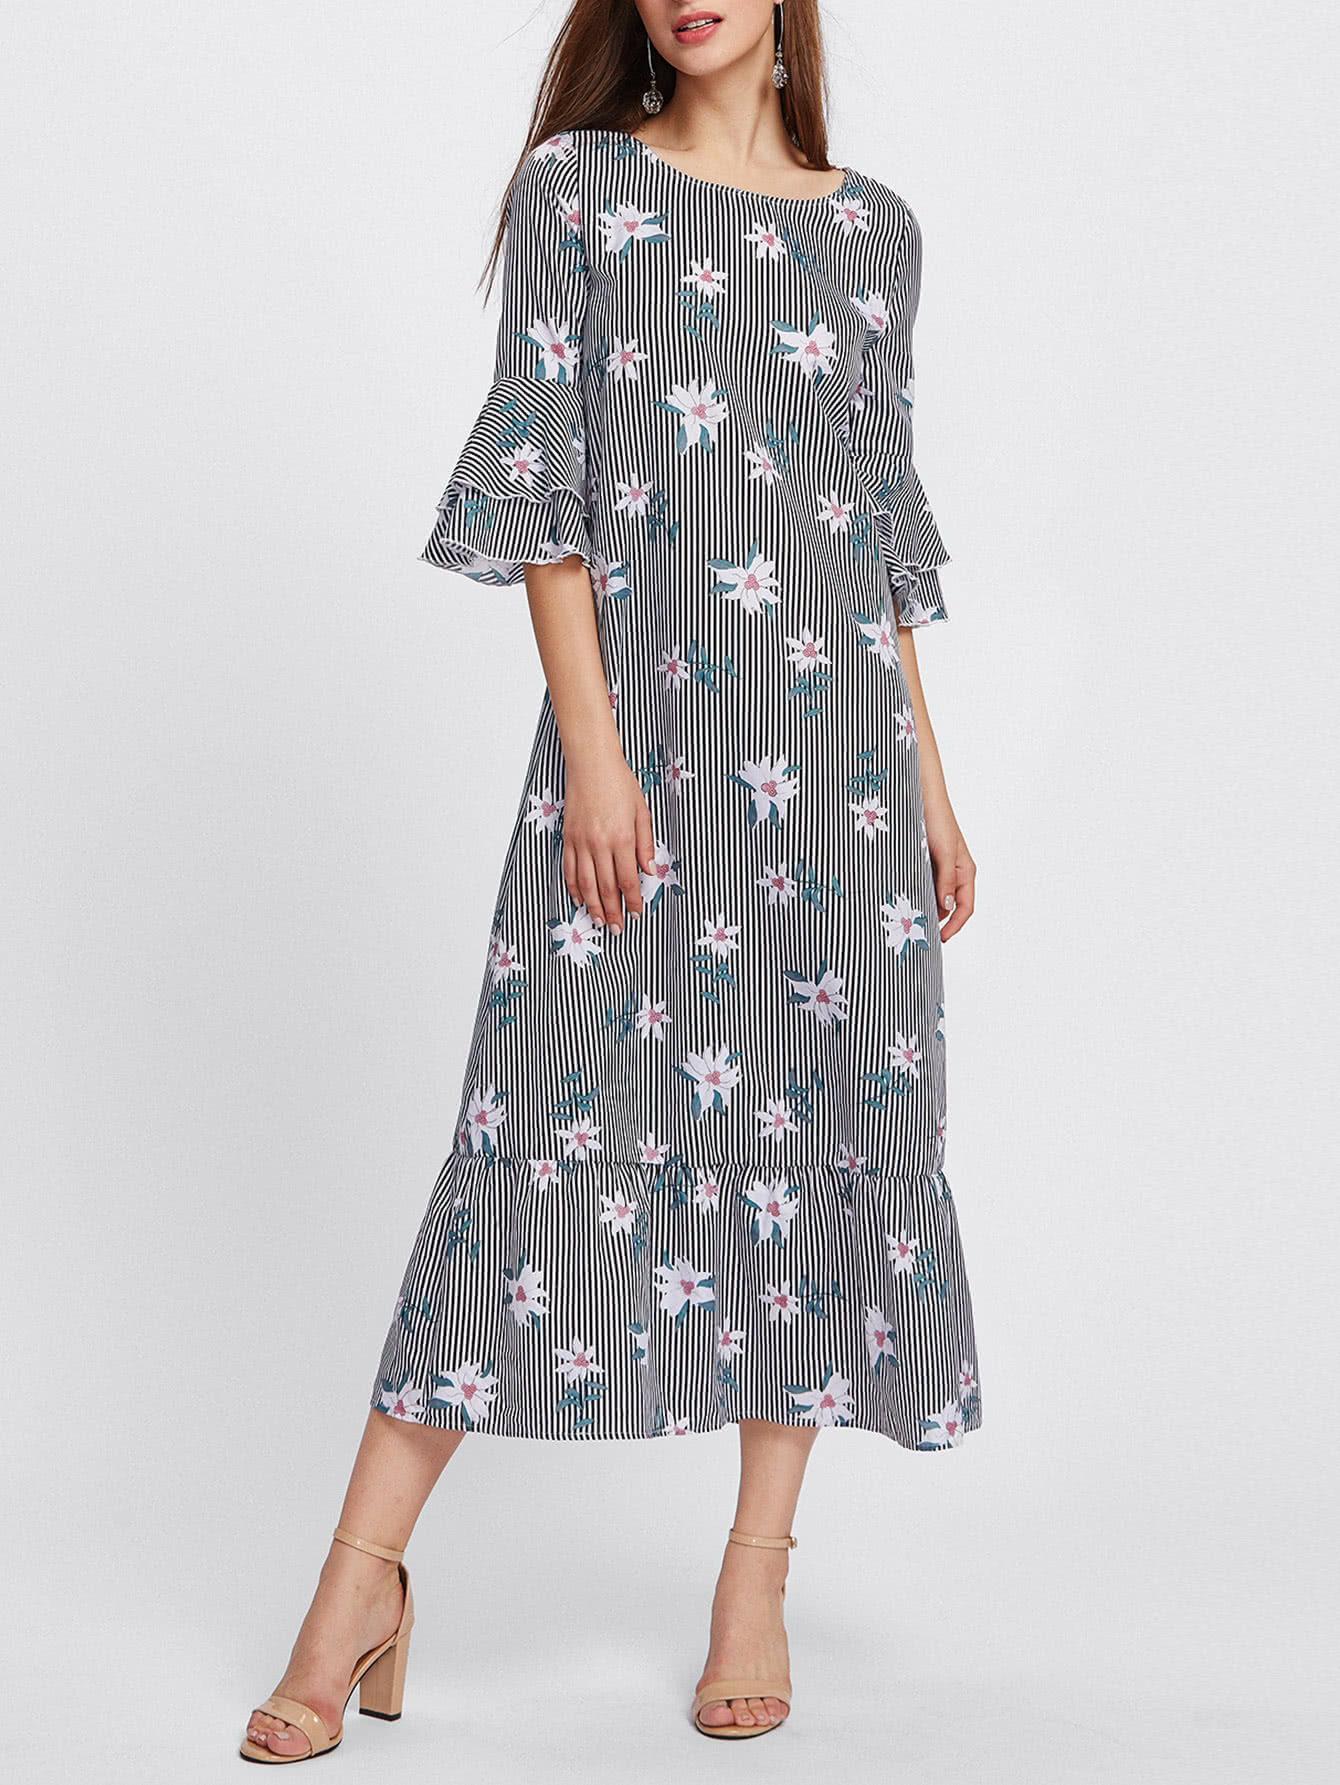 Layered Bell Sleeve Mixed Print Ruffle Hem Dress contrast layered ruffle hem pearl embellished dress